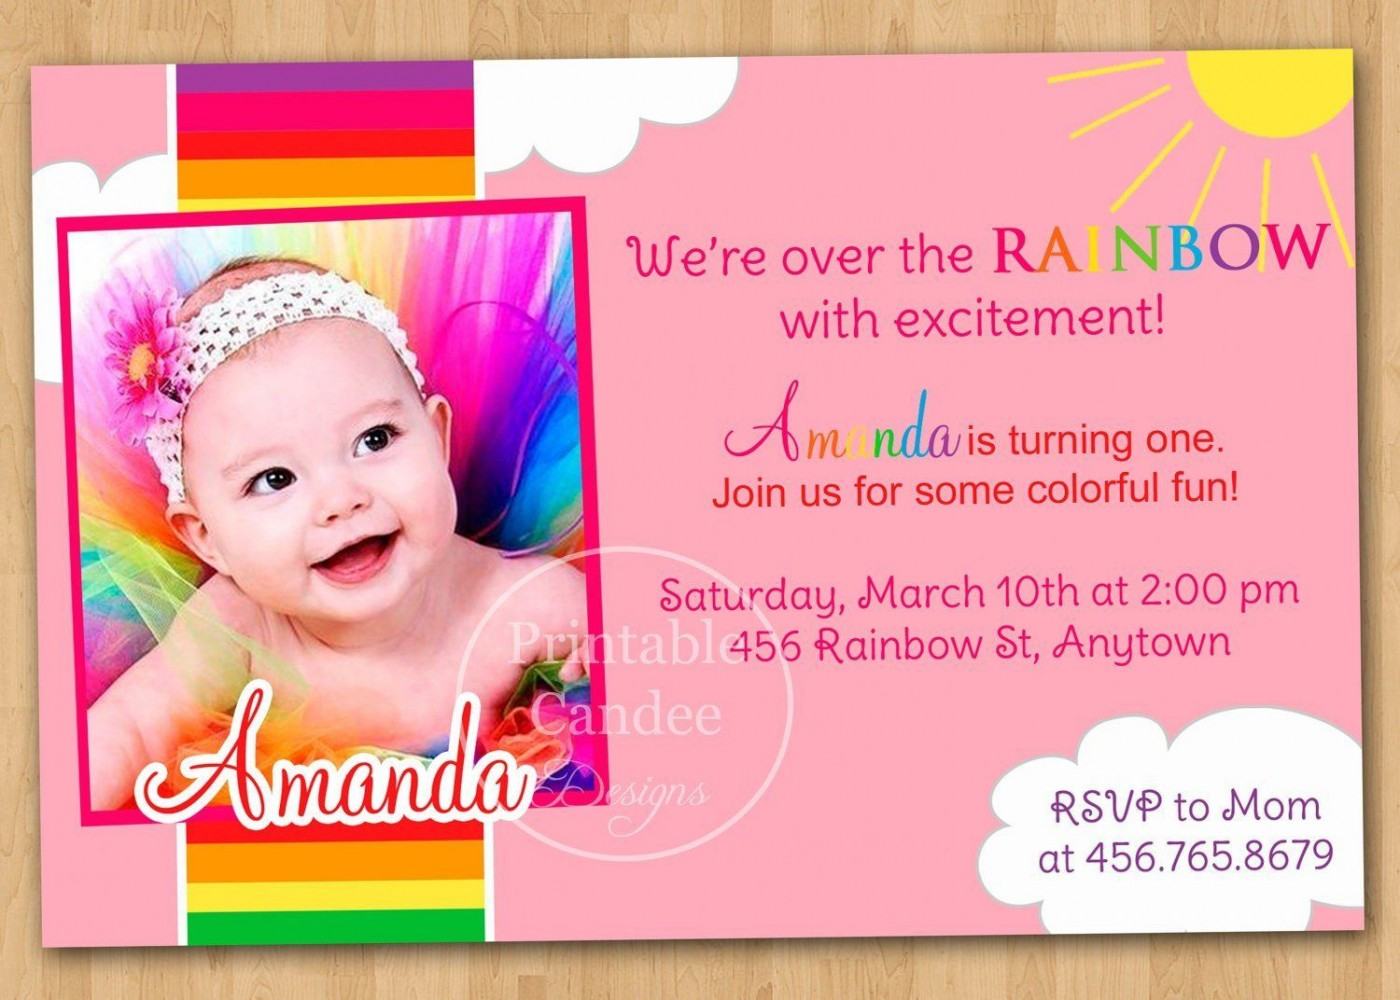 008 Incredible Free Online Birthday Invitation Card Maker With Photo Idea  1st1400